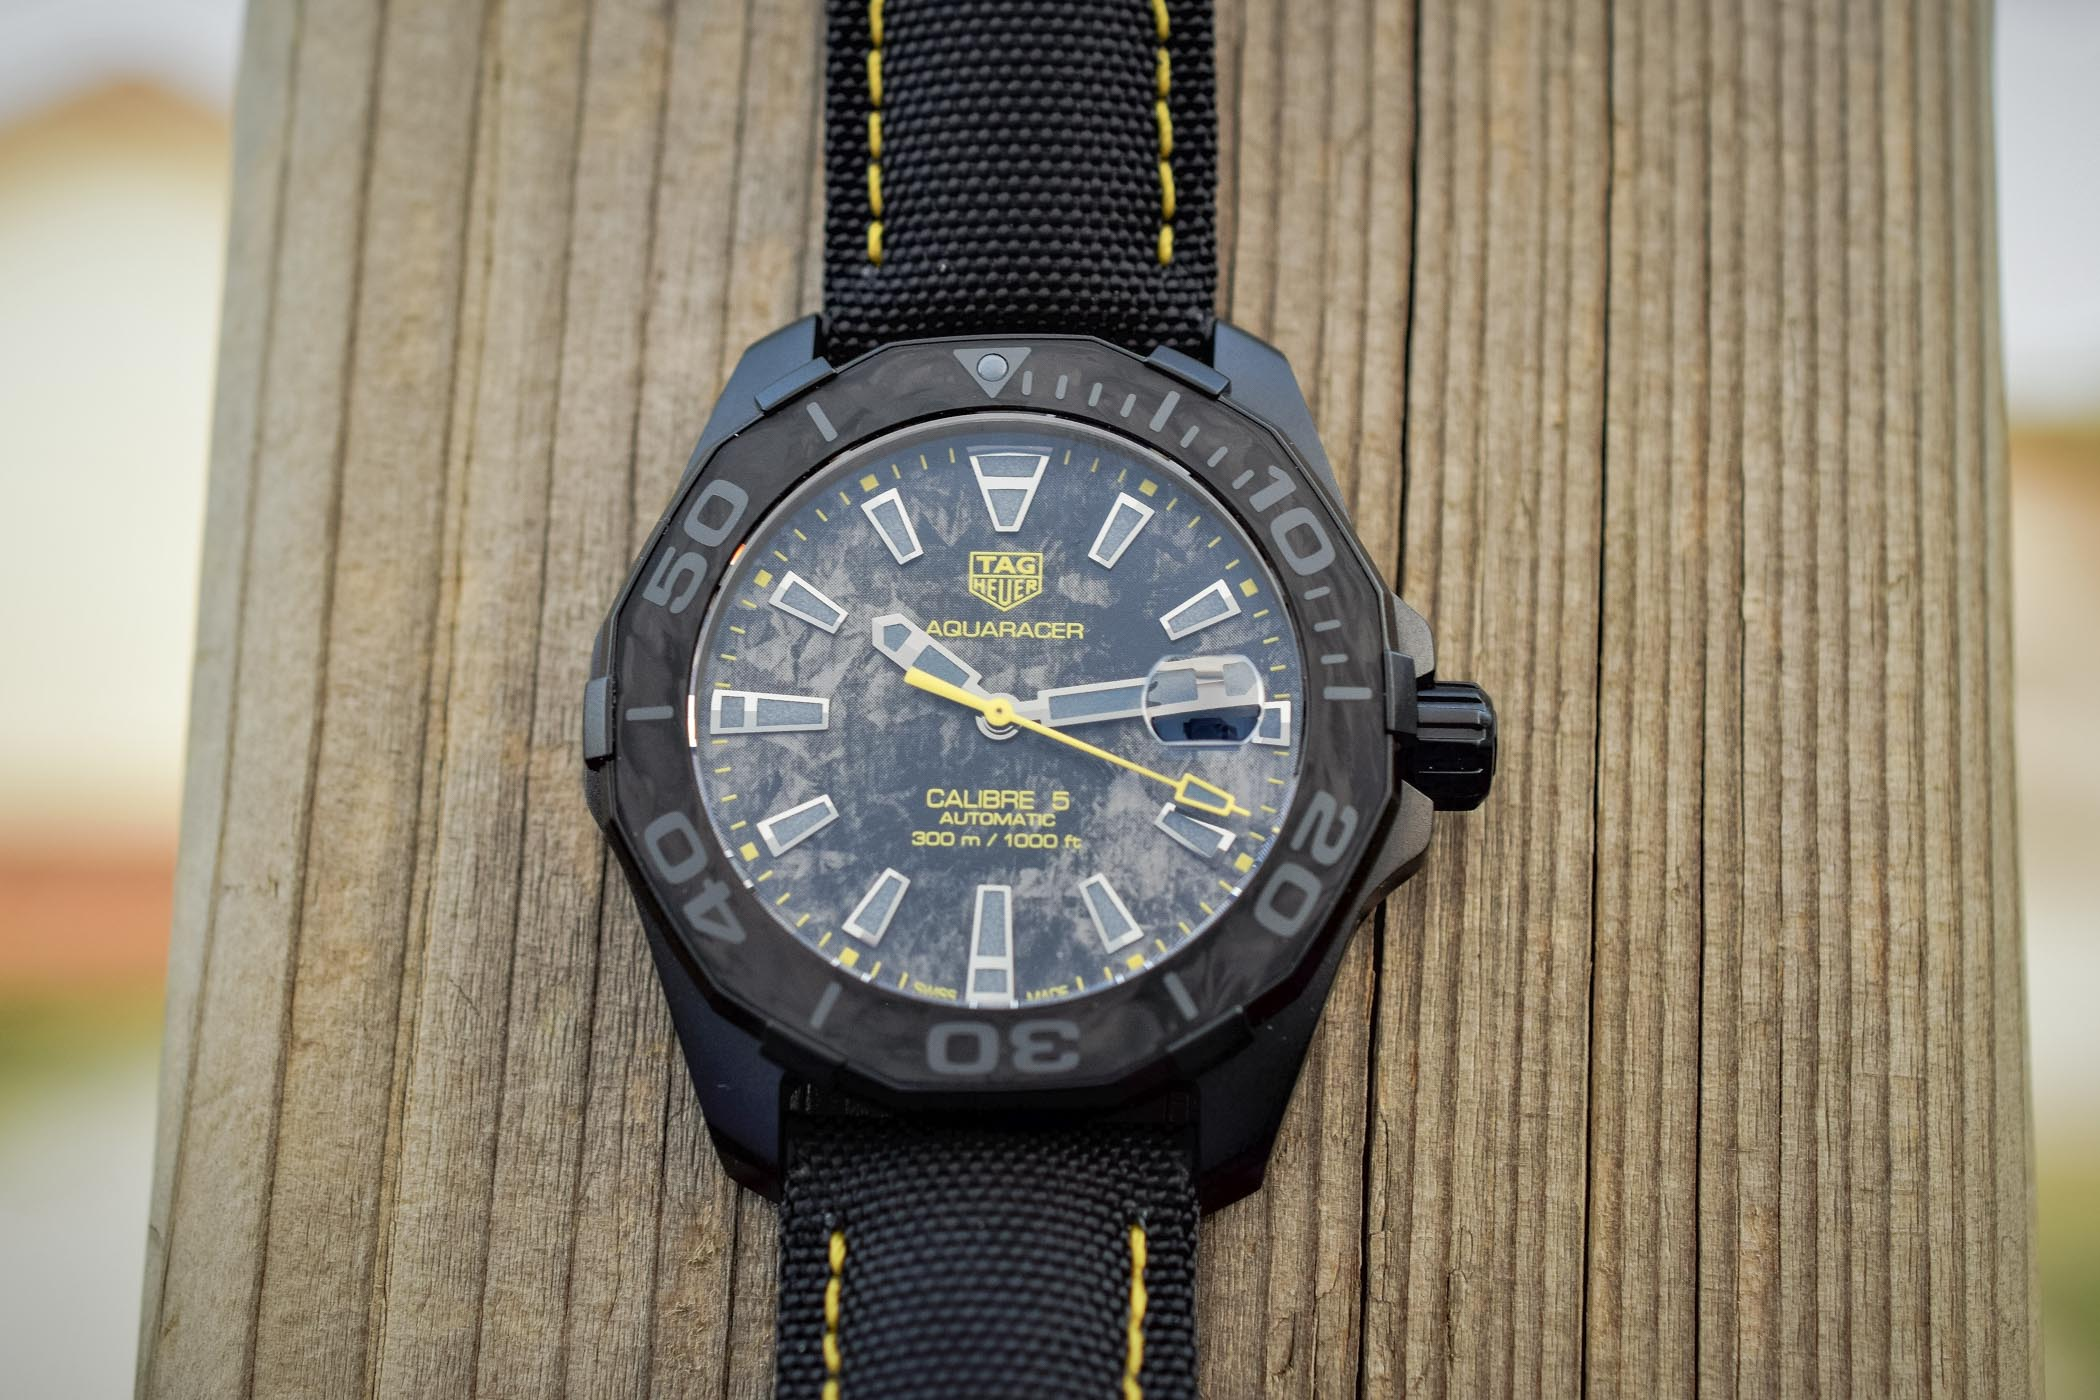 TAG Heuer Carbon Aquaracer Calibre 5 Special Series